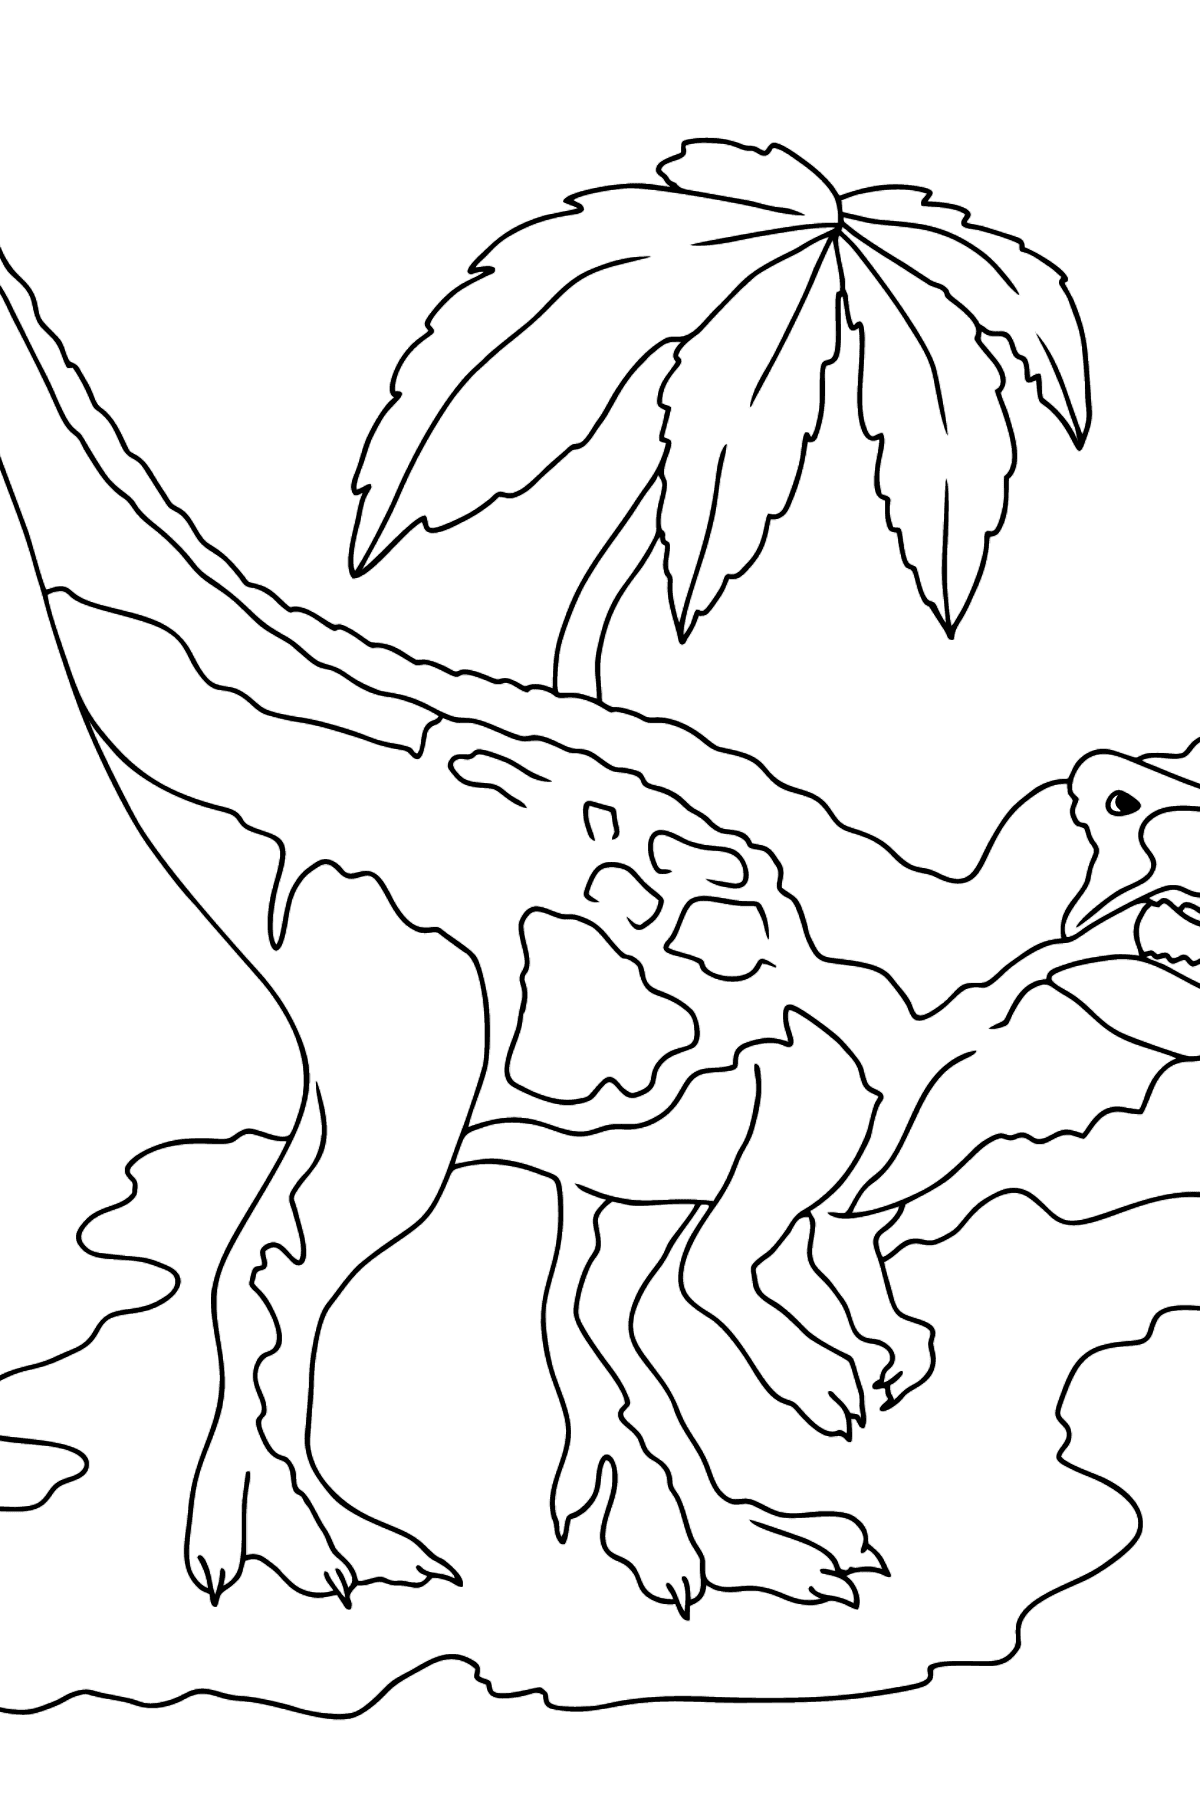 Coloring Page - Tyrannosaurus - A Terrestrial Predator - Coloring Pages for Kids